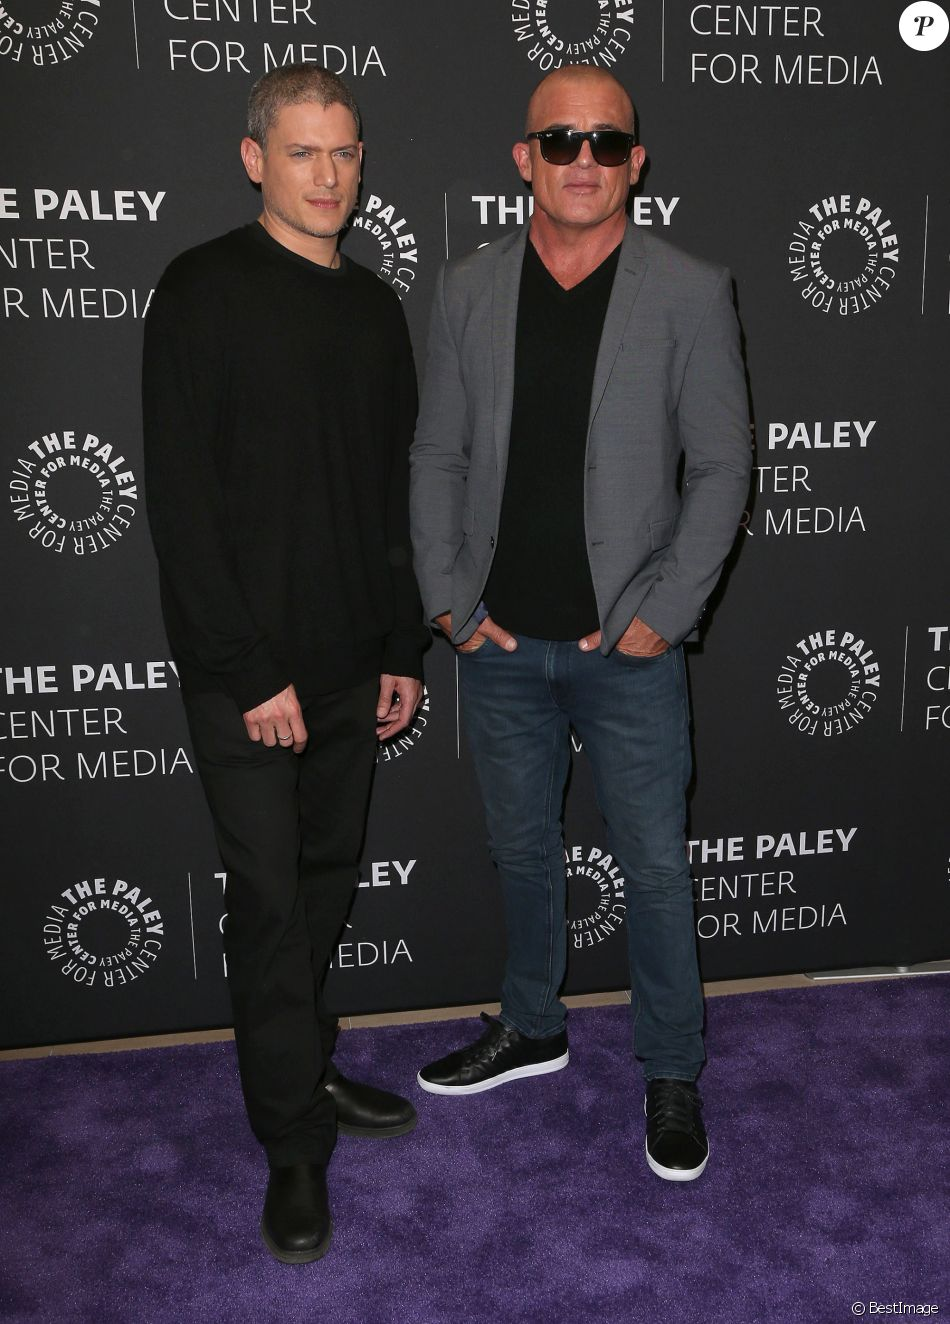 Wentworth Miller, Dominic Purcell à la projection de la nouvelle saison de ''Prison Break'' au Paley Center for Media à Beverly Hills, le 29 mars 2017 © AdMedia via Zuma/Bestimage